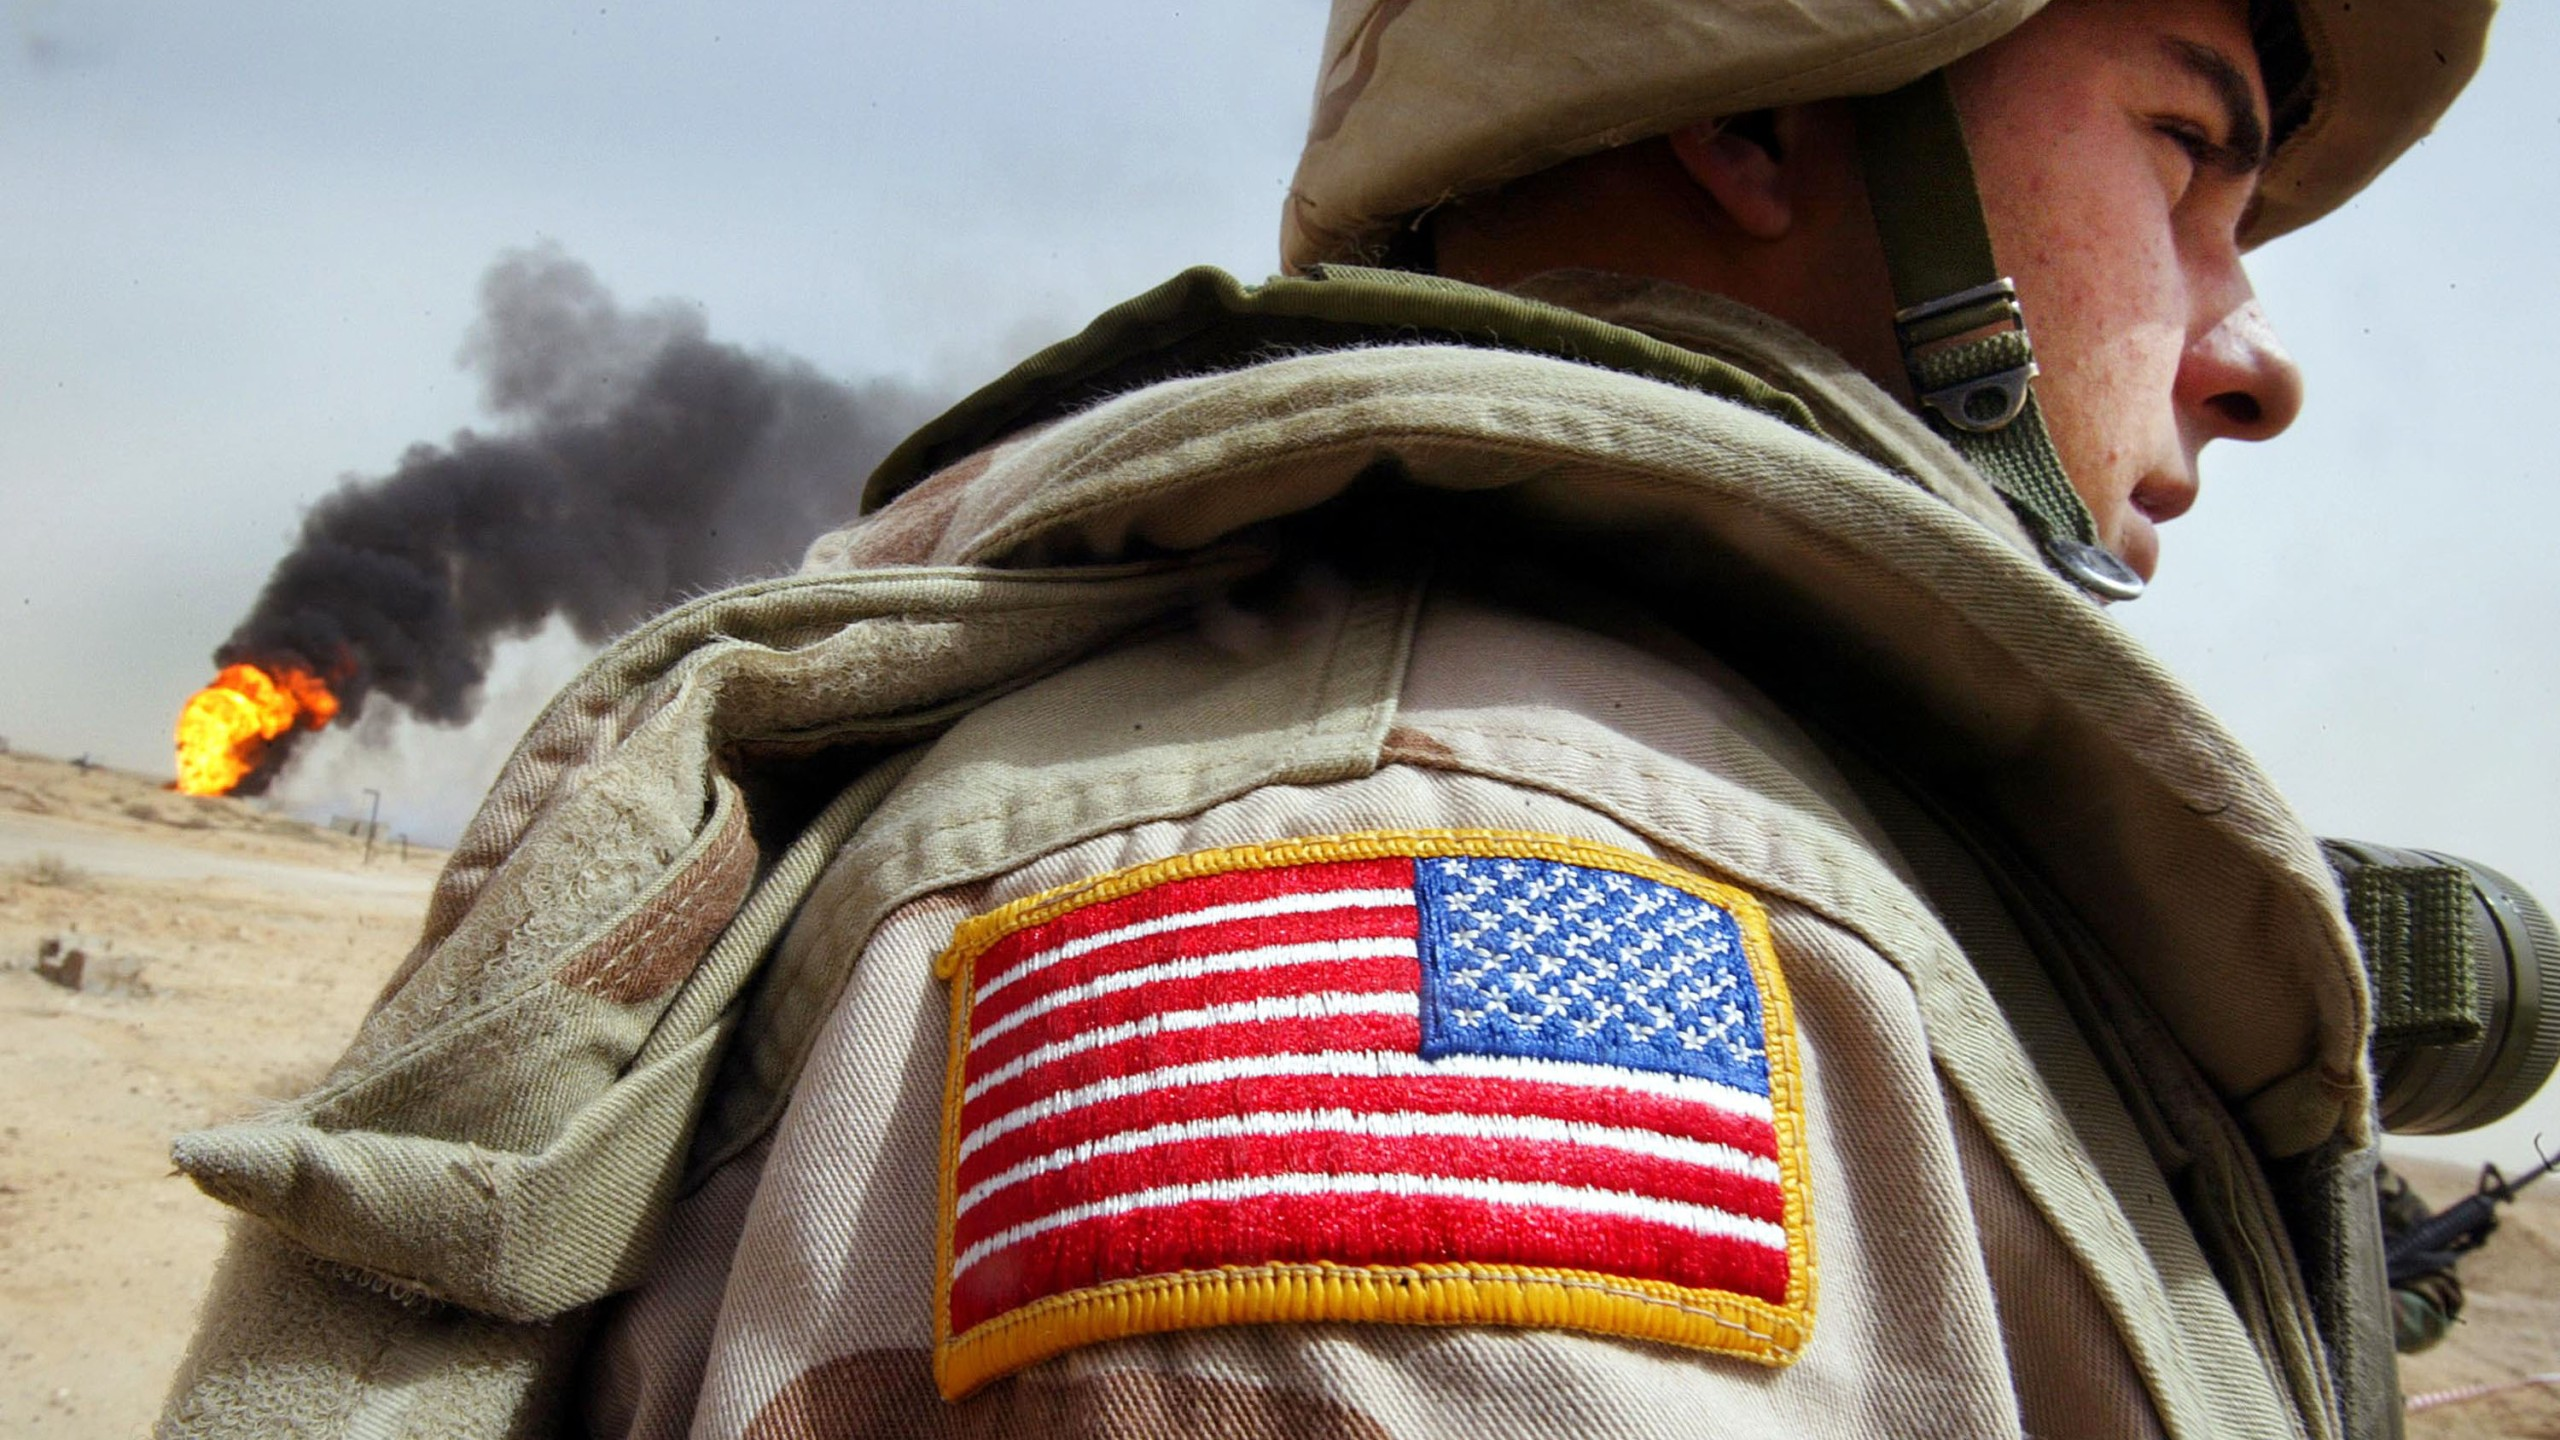 A file photo shows a U.S. flag patch on an American soldier's uniform. (Credit: Mario Tama/Getty Images)